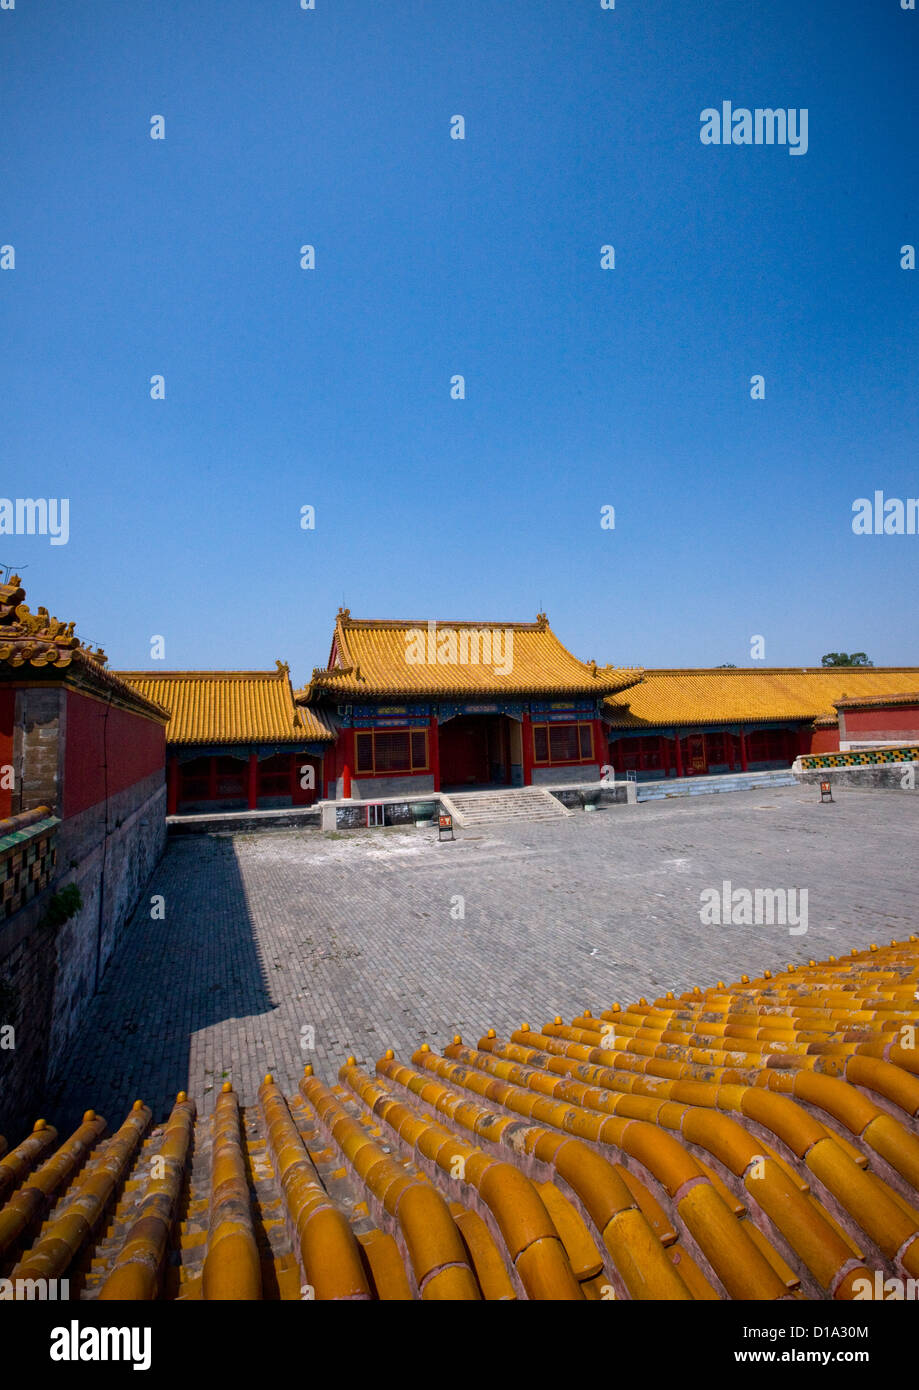 Forbidden City, Beijing, China - Stock Image